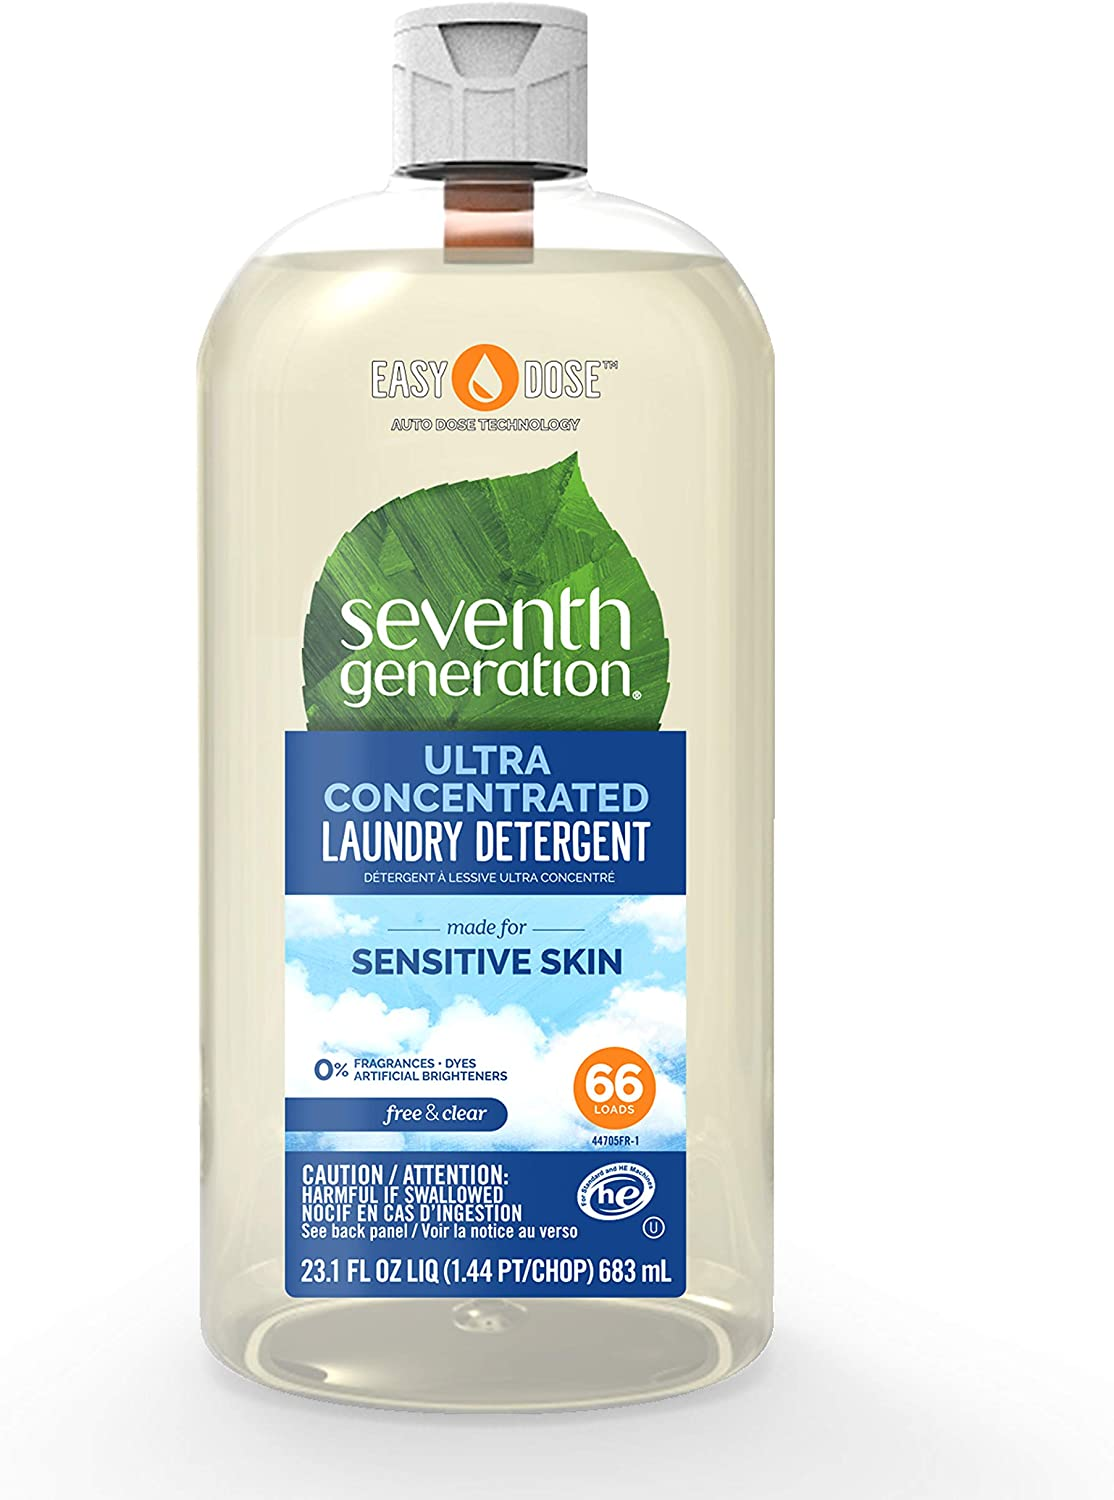 Seventh Generation Laundry Detergent, Ultra Concentrated EasyDose, Free & Clear, 23 oz (66 Loads)